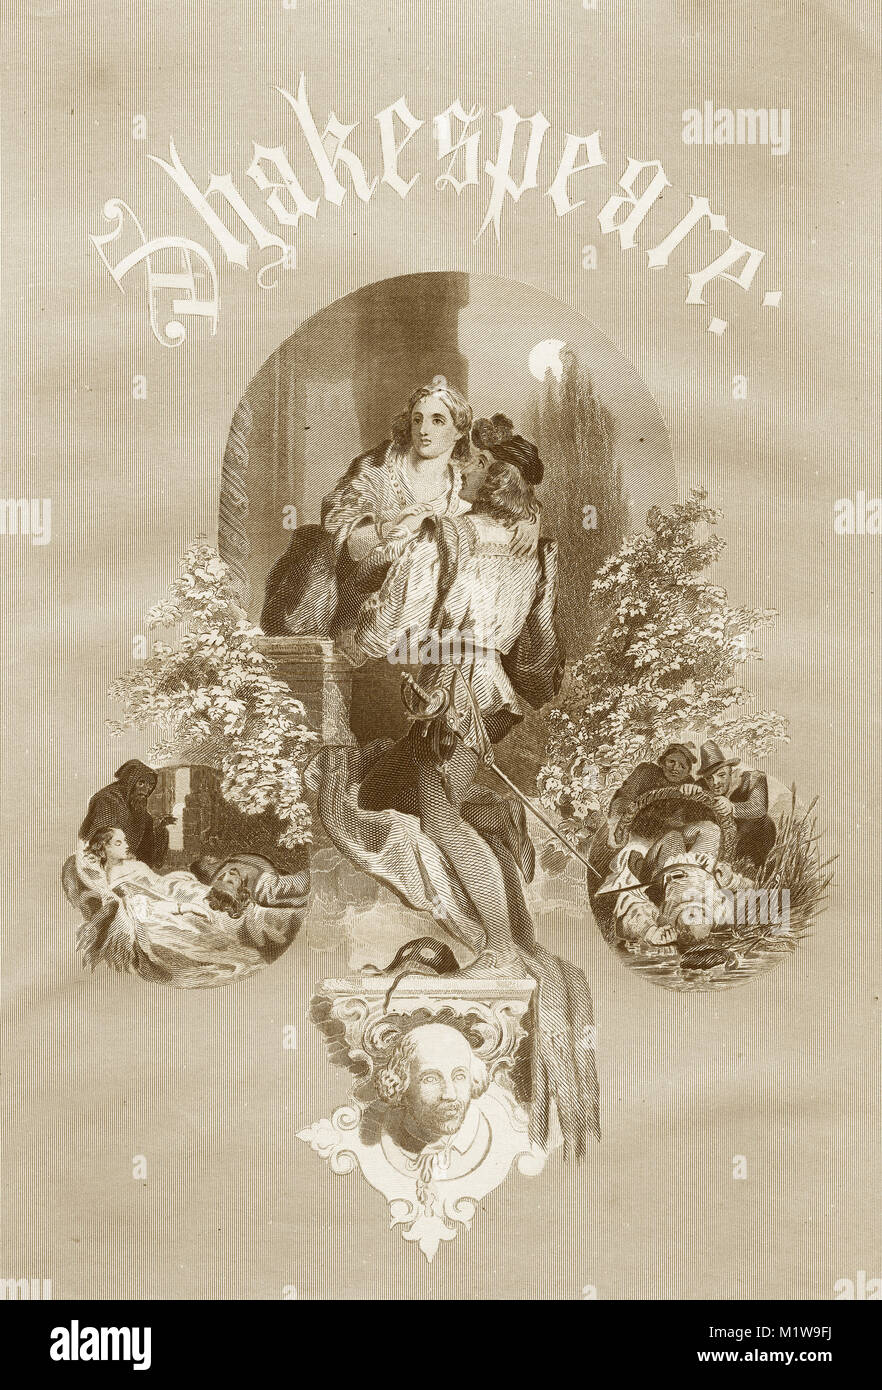 Engraving of various Shakespearean themes. From the Illustrated Complete Works of Shakespeare, 1878 - Stock Image